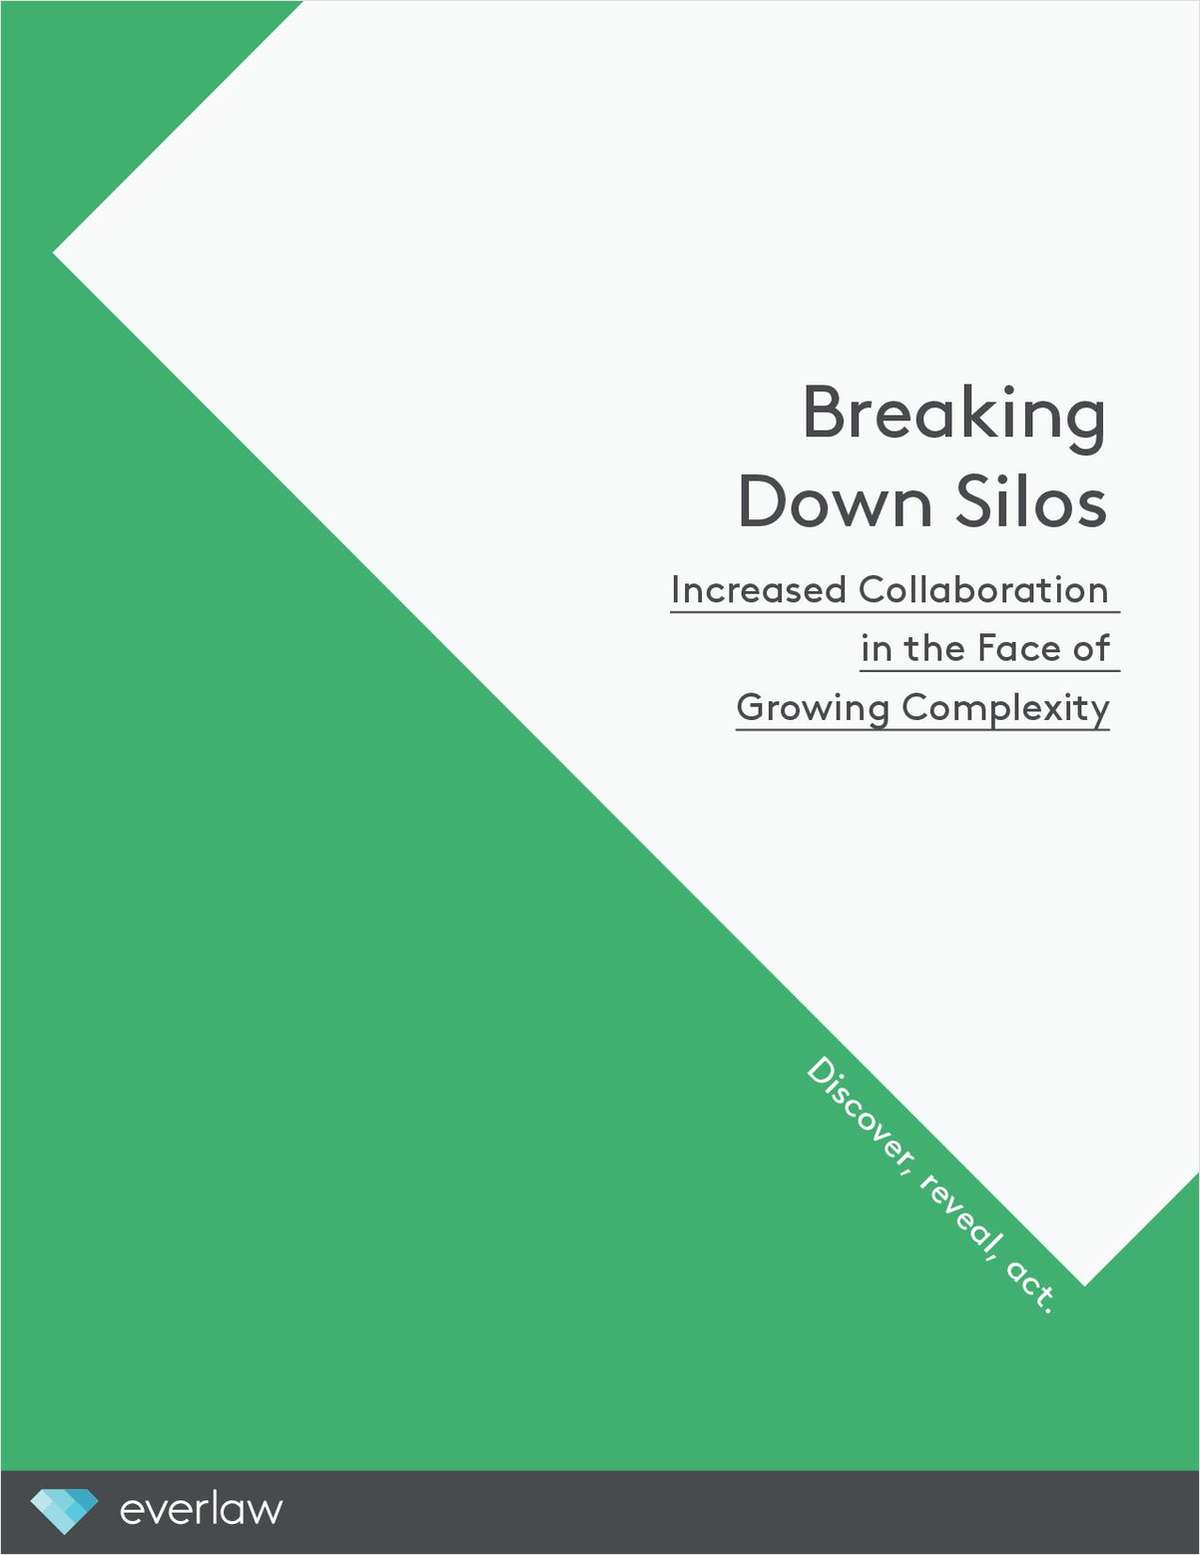 Breaking Down Silos: Increased Collaboration in the Face of Growing Complexity